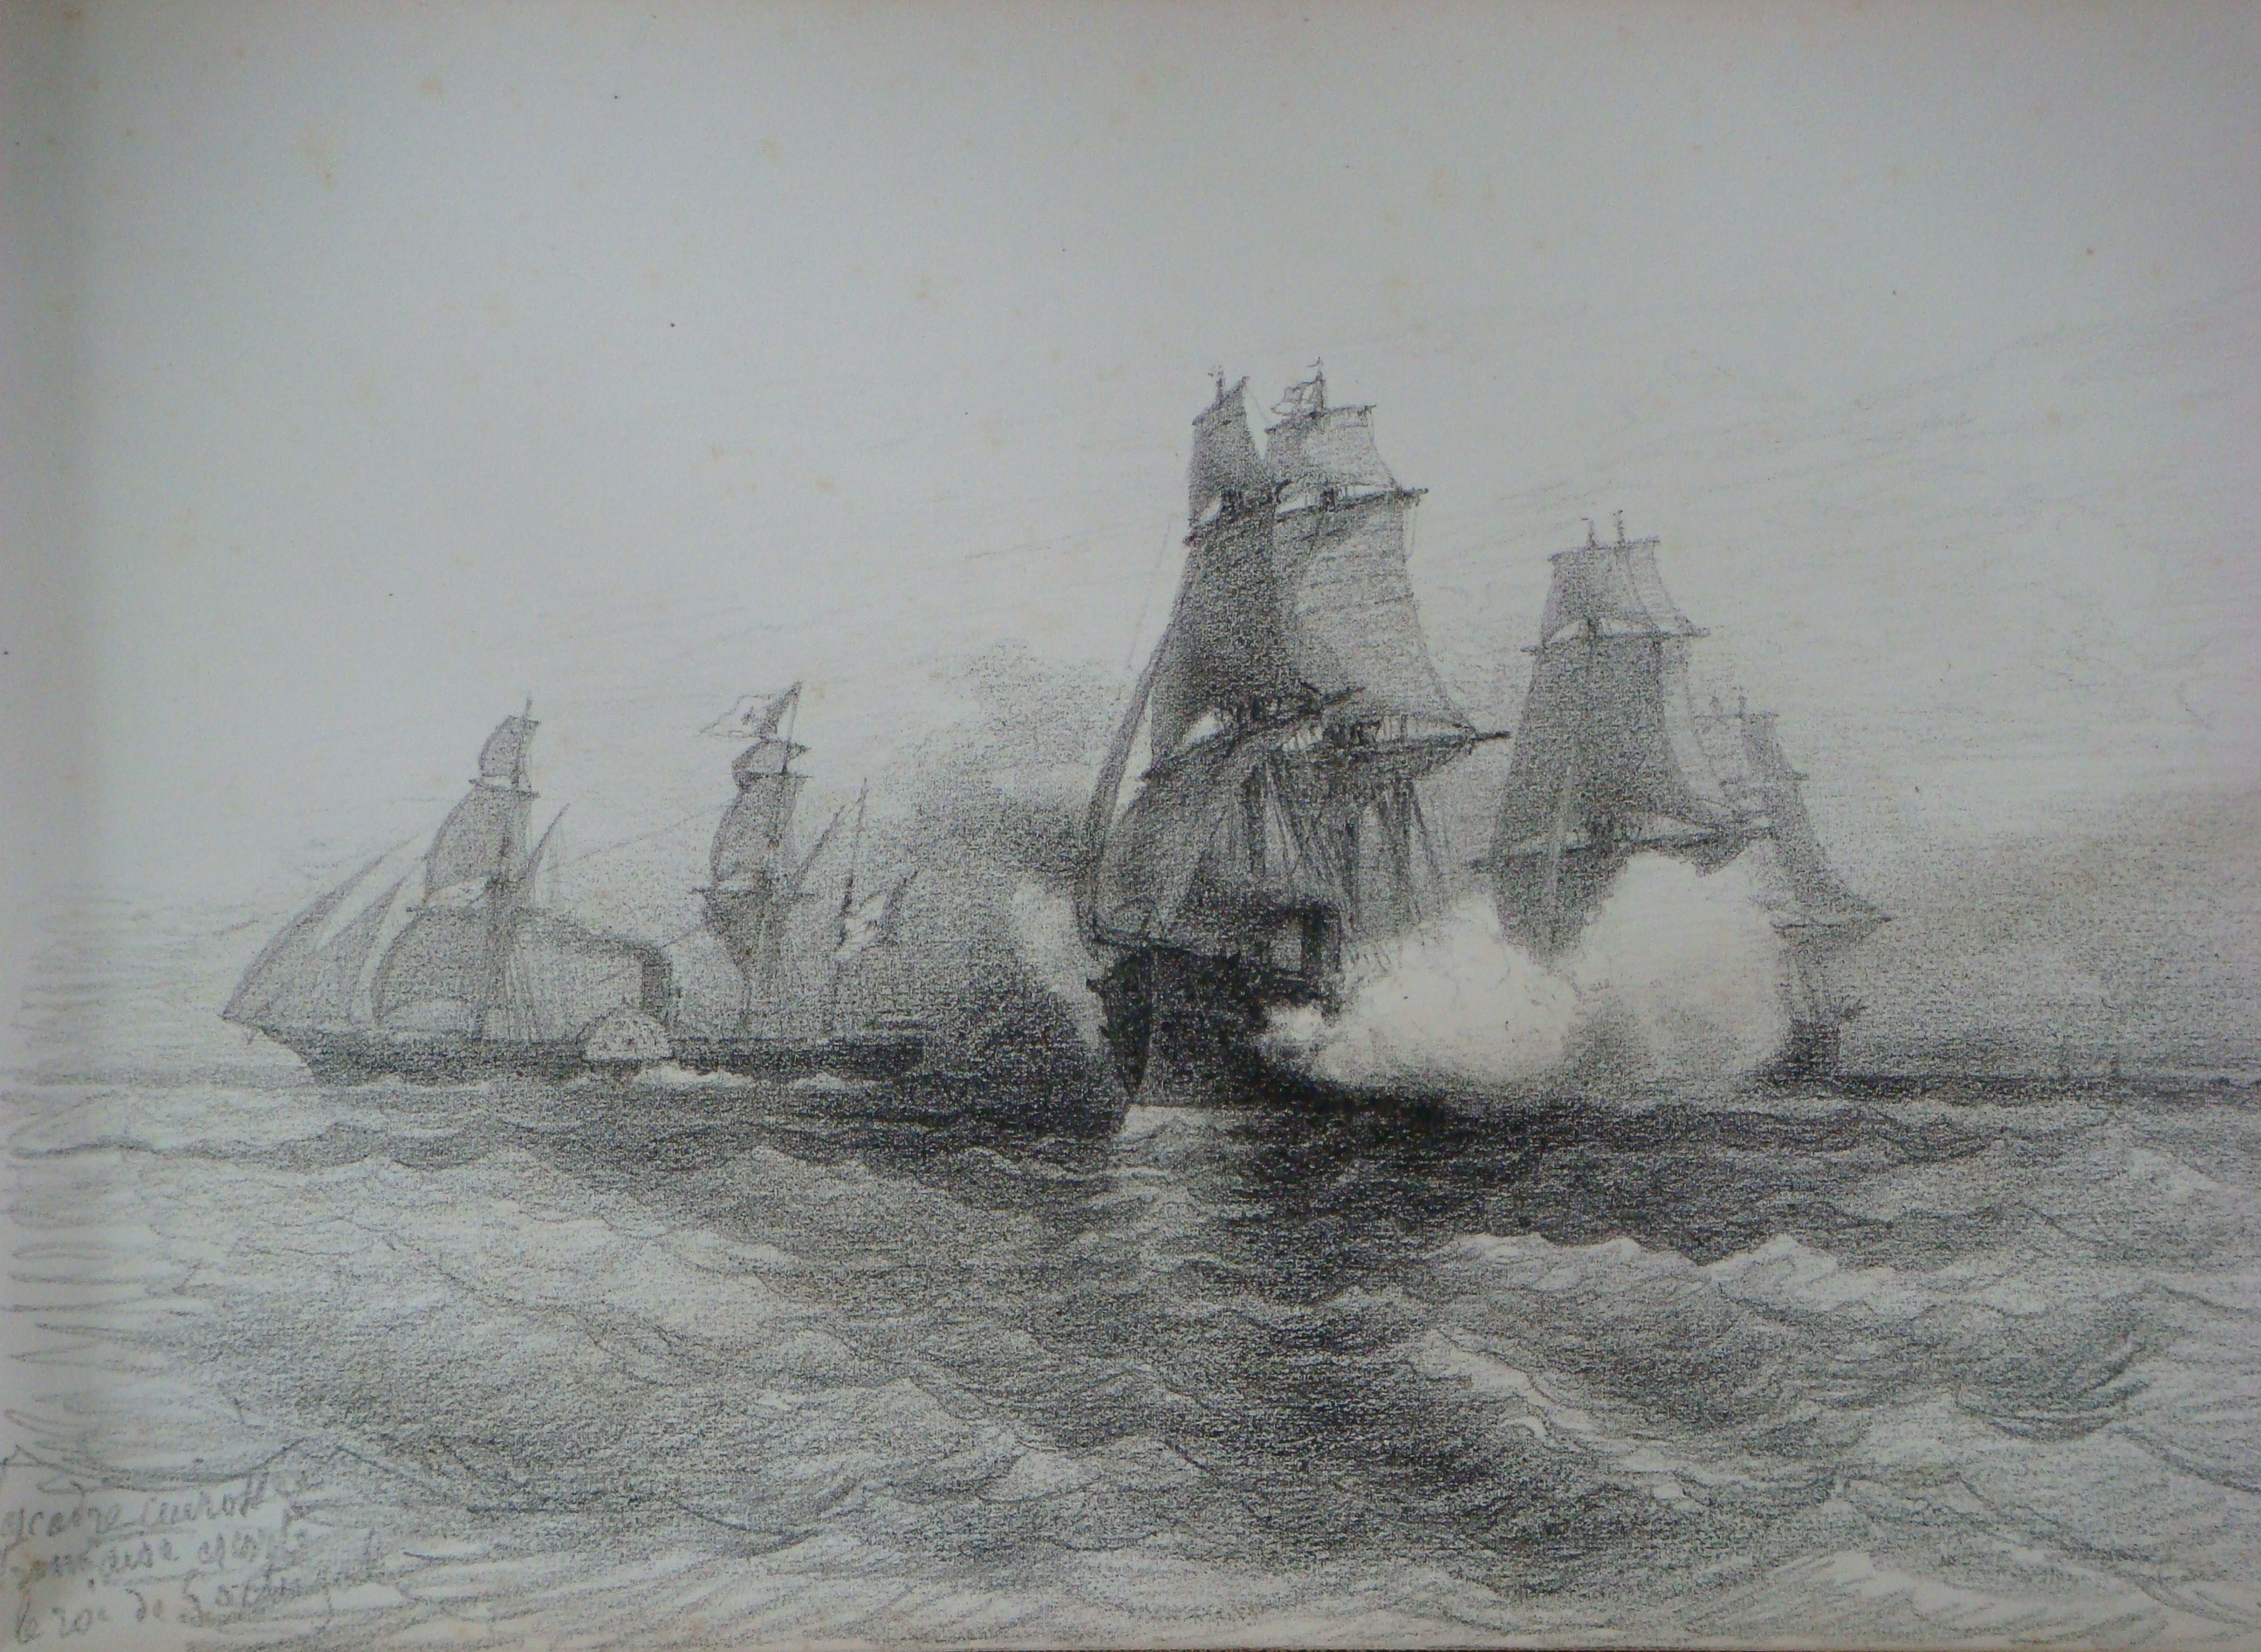 File 17 l escadre cuirass e fran aise escorte le roi du portugal dessin au fusain collection - Dessin du portugal ...